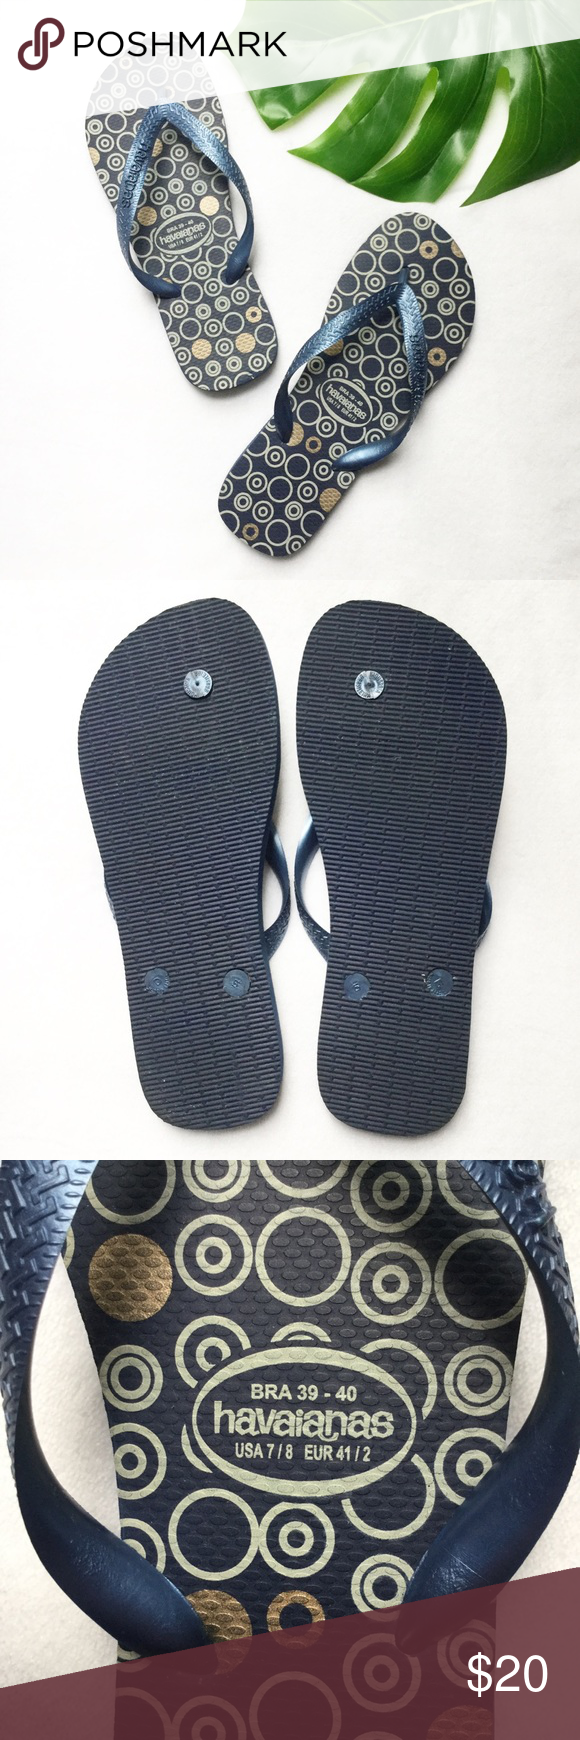 004881ec72bc Havaianas Navy Off White Gold Circle Flip Flops Excellent condition flip  flops with an off white